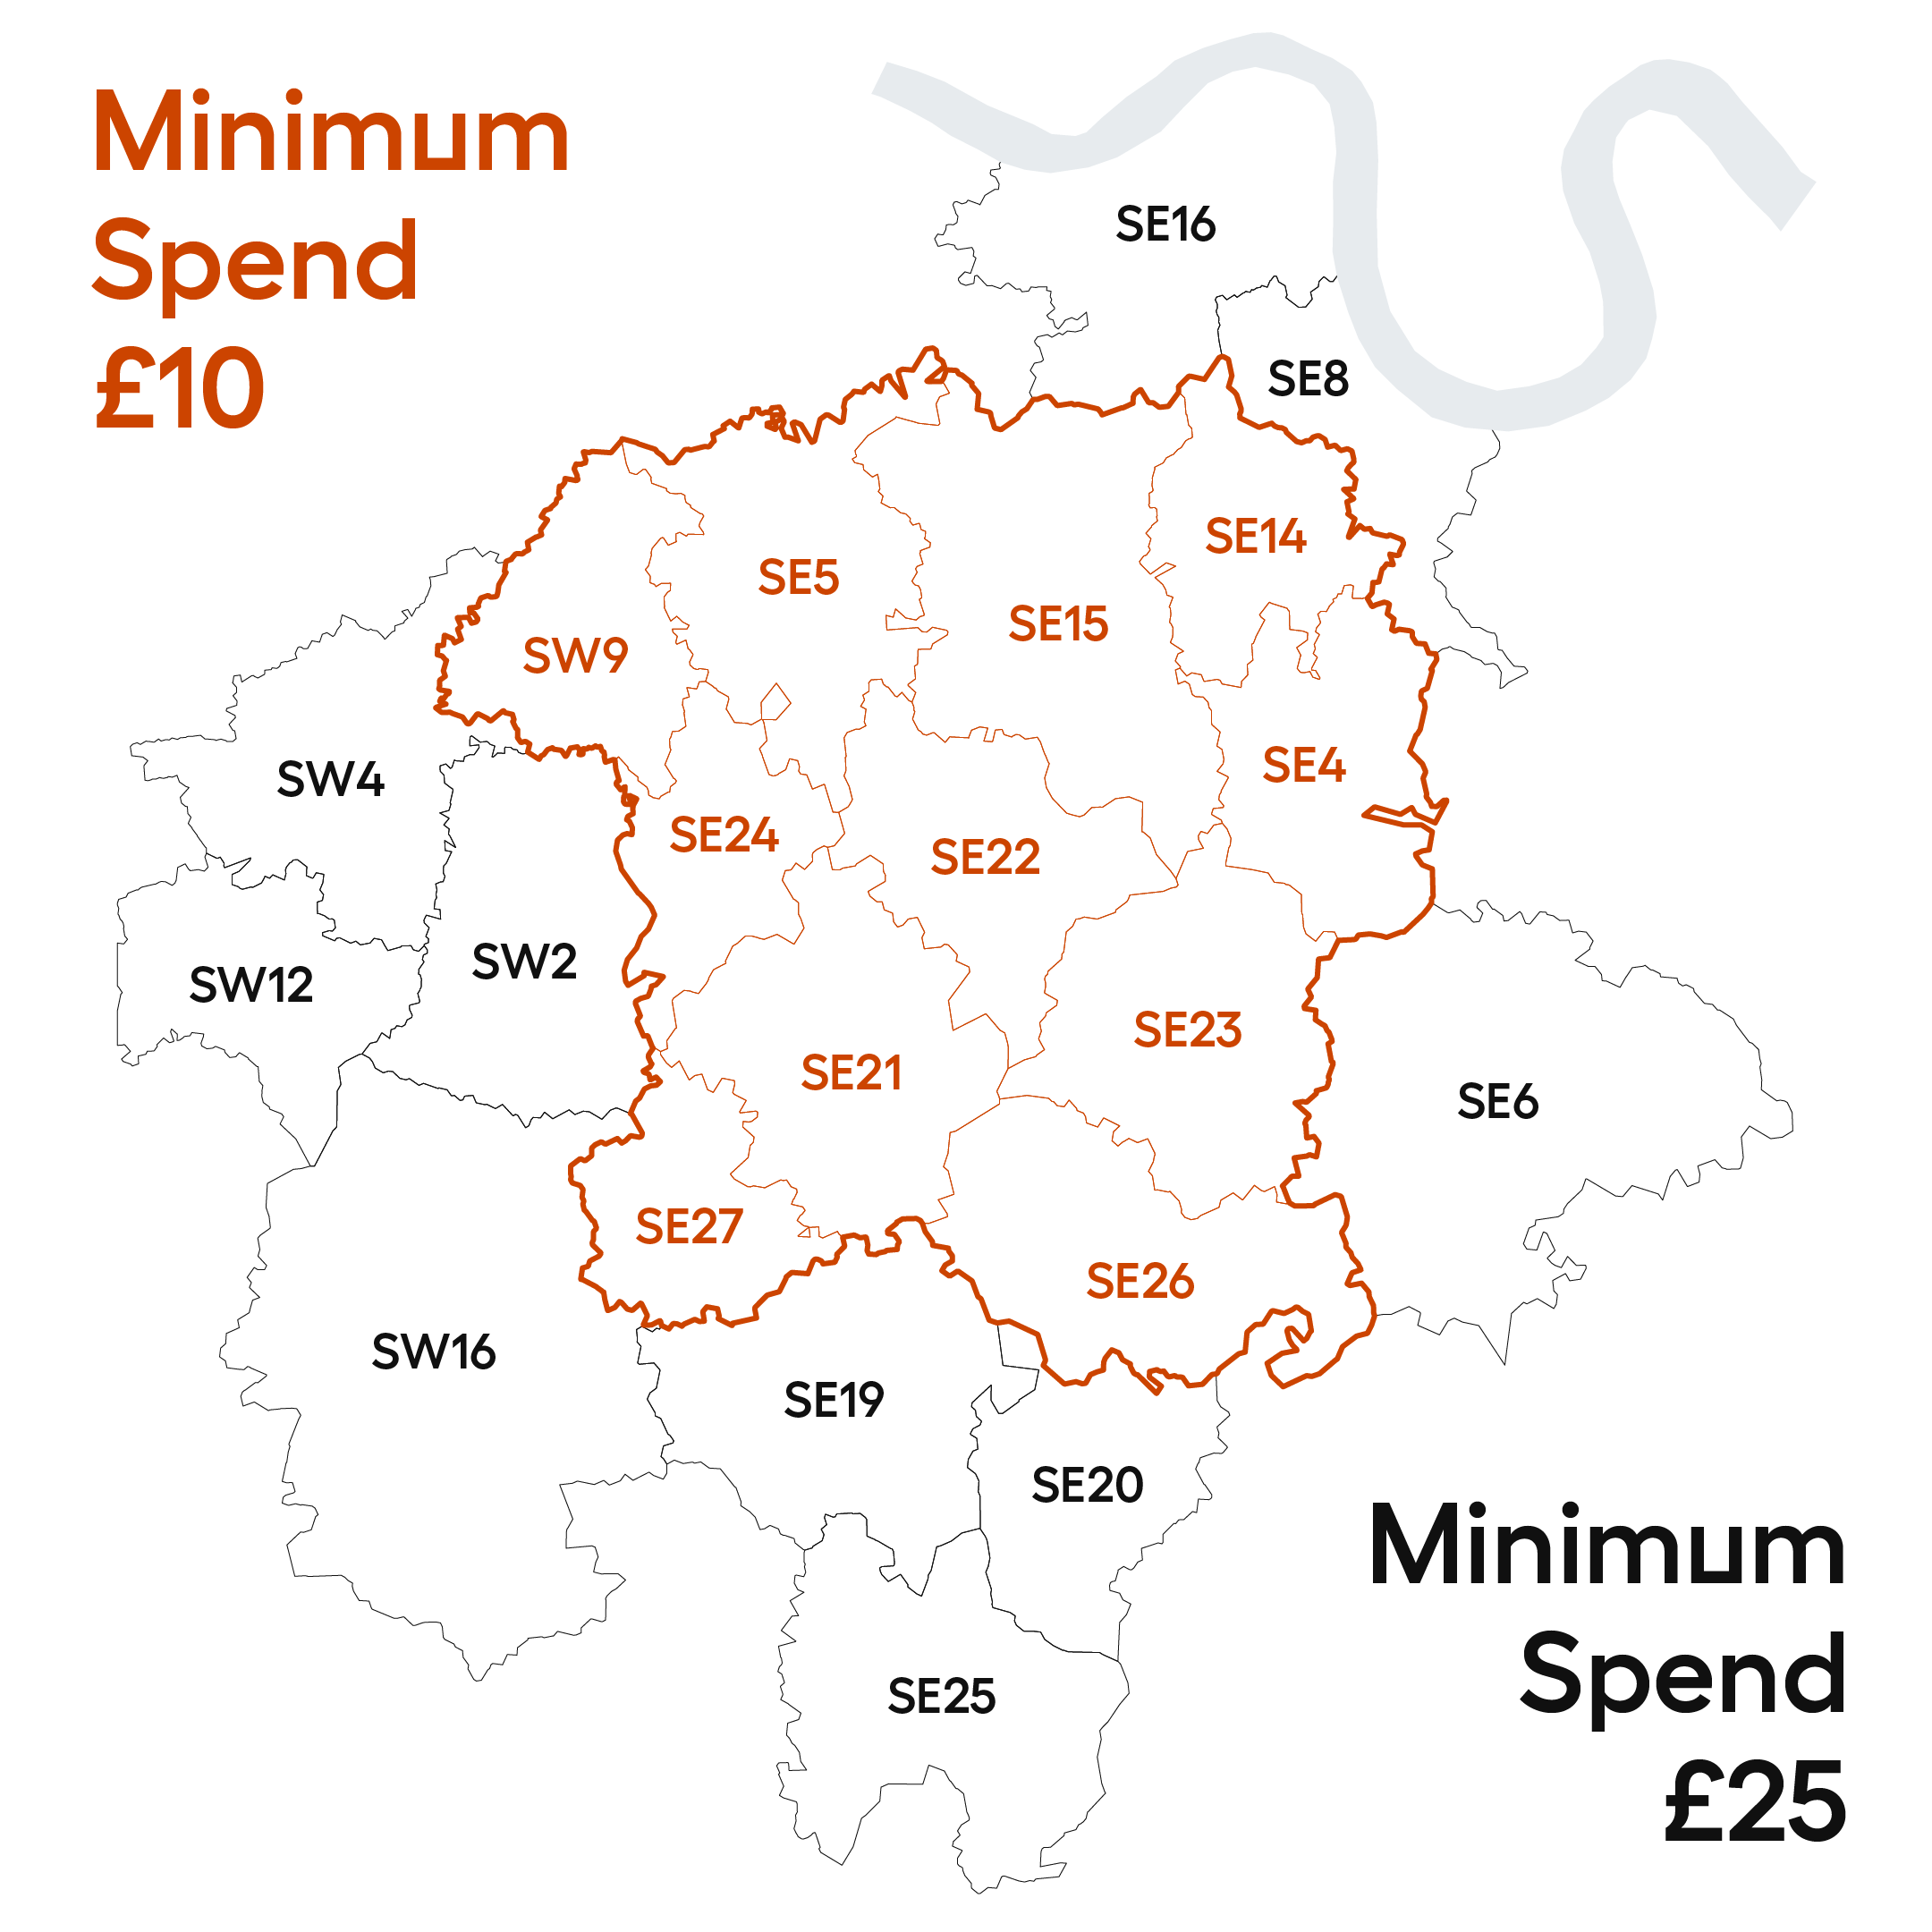 Minimum Spend £10 for free delivery (otherwise £2.50): SE4, SE5, SE14, SE15, SE21, SE22, SE23, SE24, SE26, SE27, SW9, SW4 6 Minimum Spend £25 for free delivery (otherwise £5): SE6, SE8, SE16, SE19, SE20, SE25, SW2, SW4 8, SW12 0, SW16 2, SW16 3, BR3 1, BR3 4, CR7 8